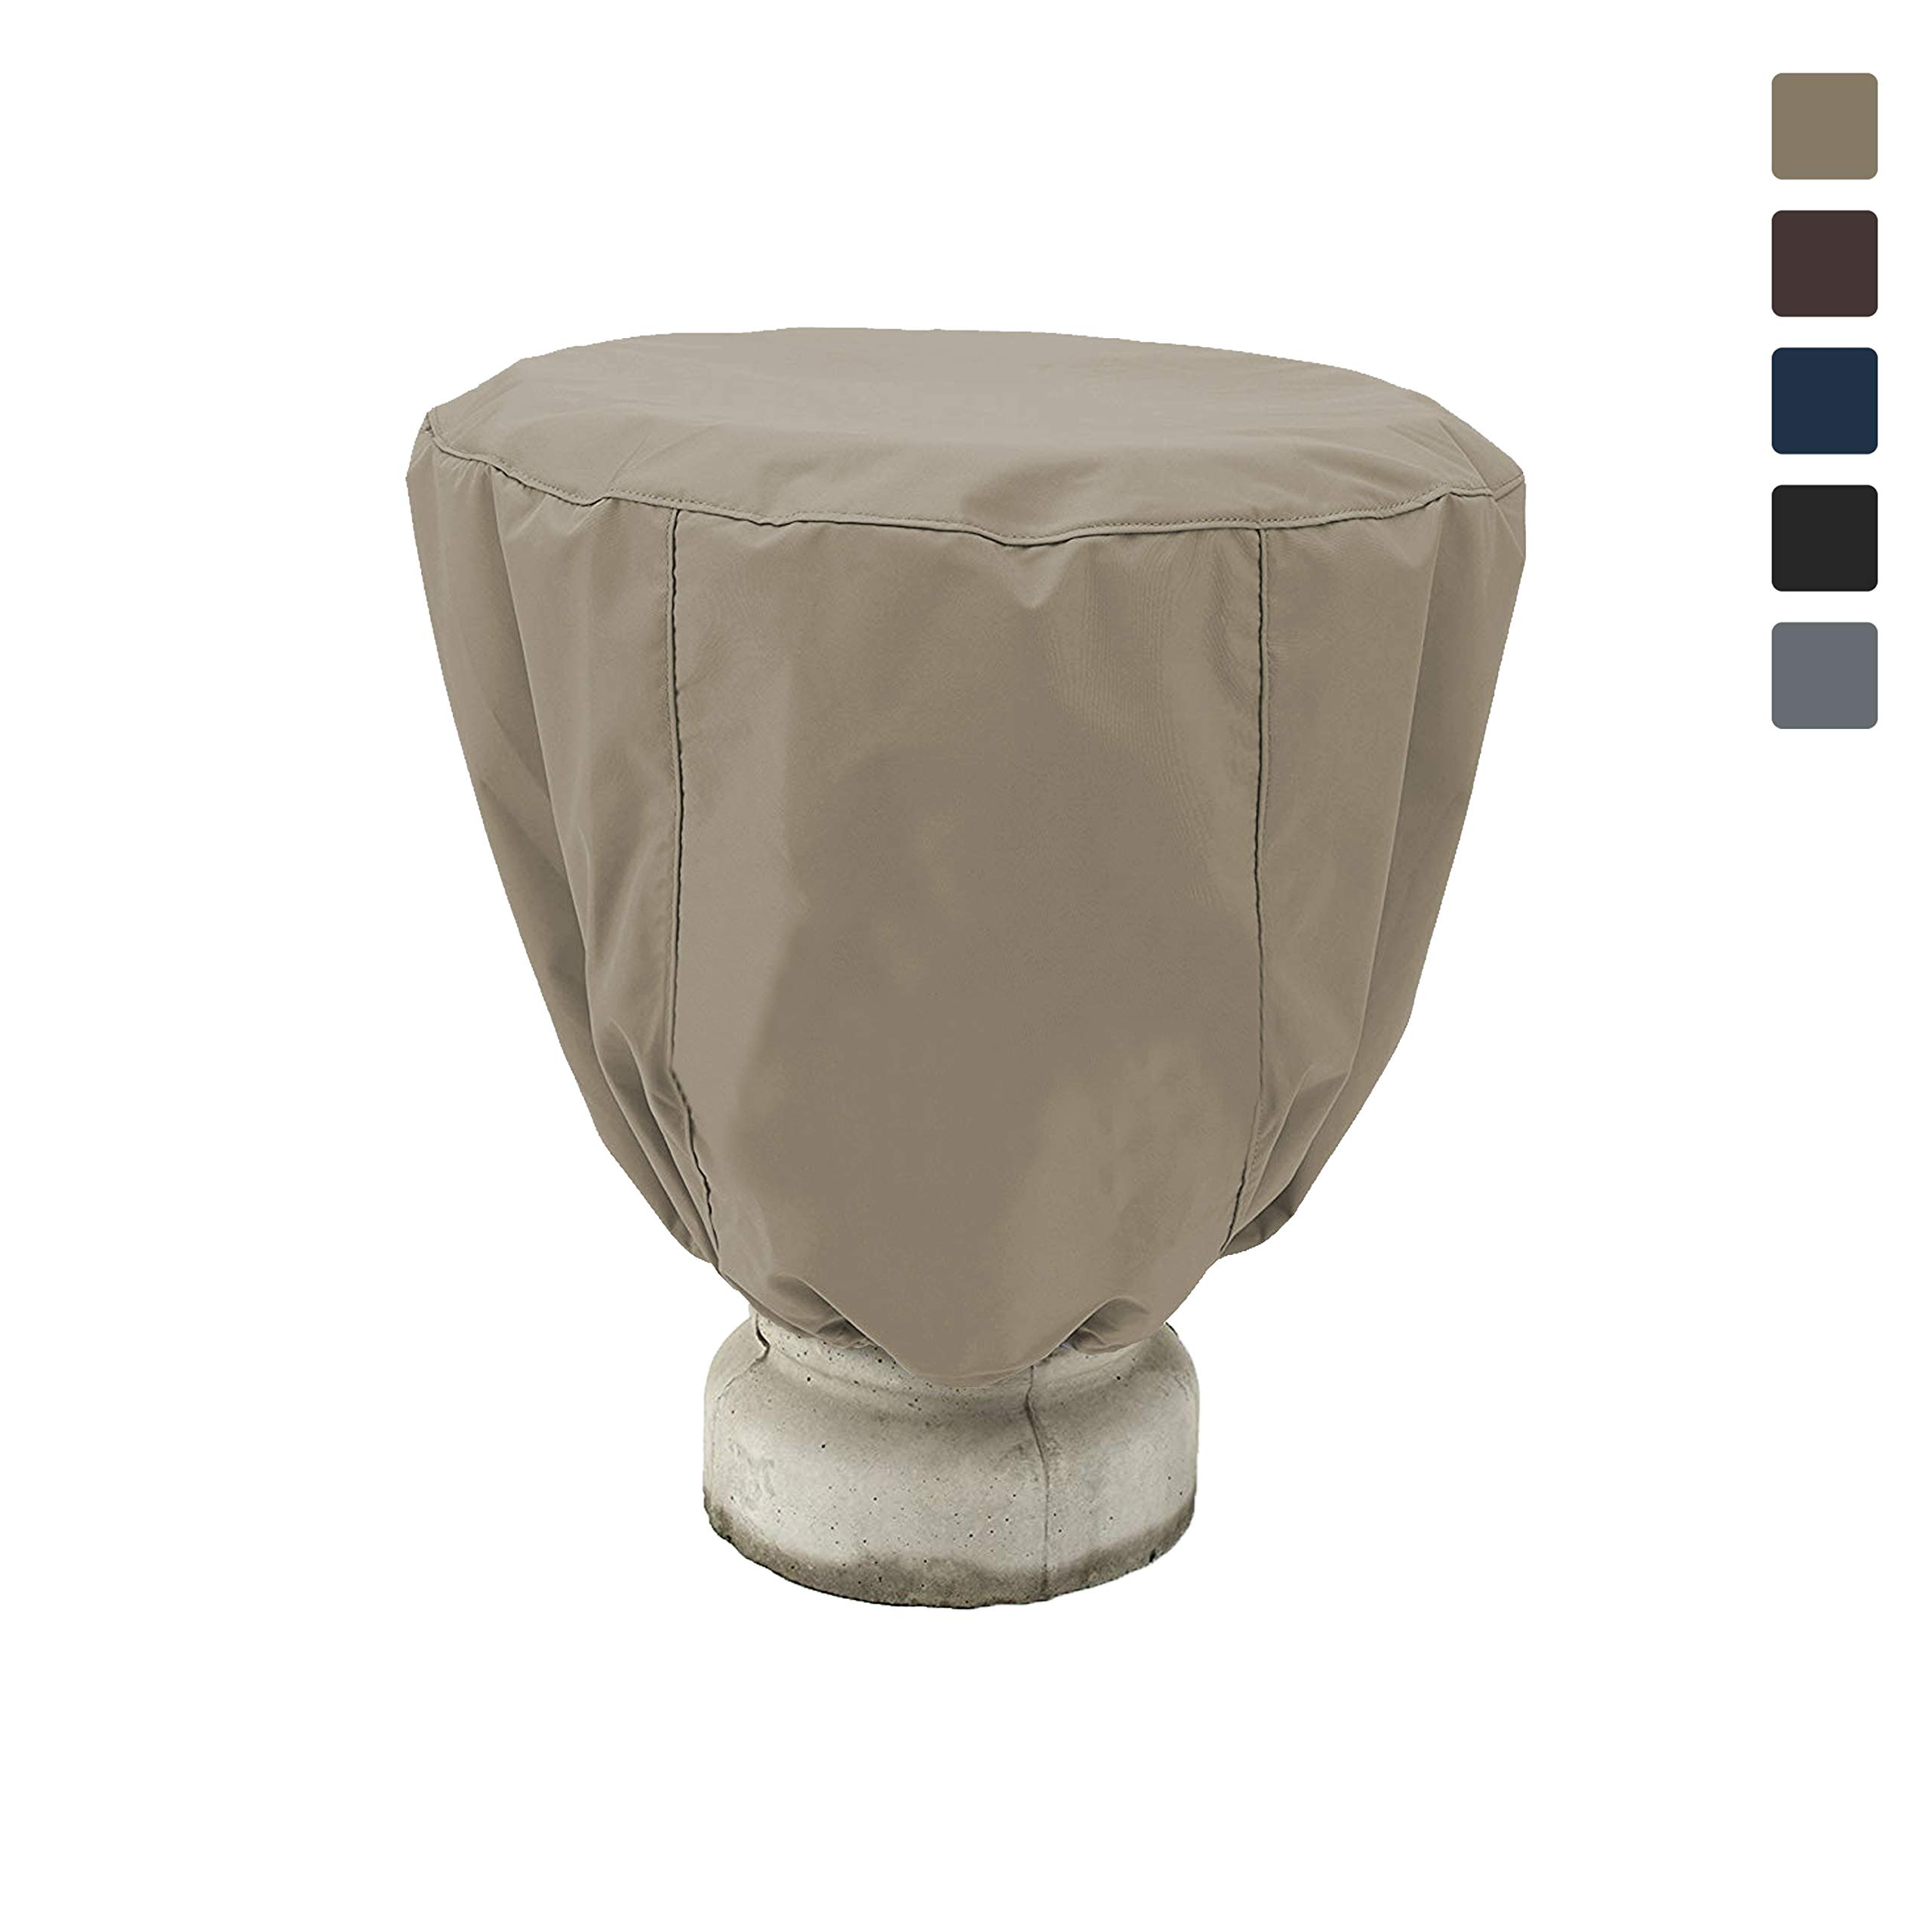 COVERS & ALL Bird Bath Cover 12 Oz Waterproof - Customize Cover with Any Size - 100% UV Weather Resistant Outdoor Cover with Elastic for Snug Fit (32'' Dia x 24'' H, Beige)